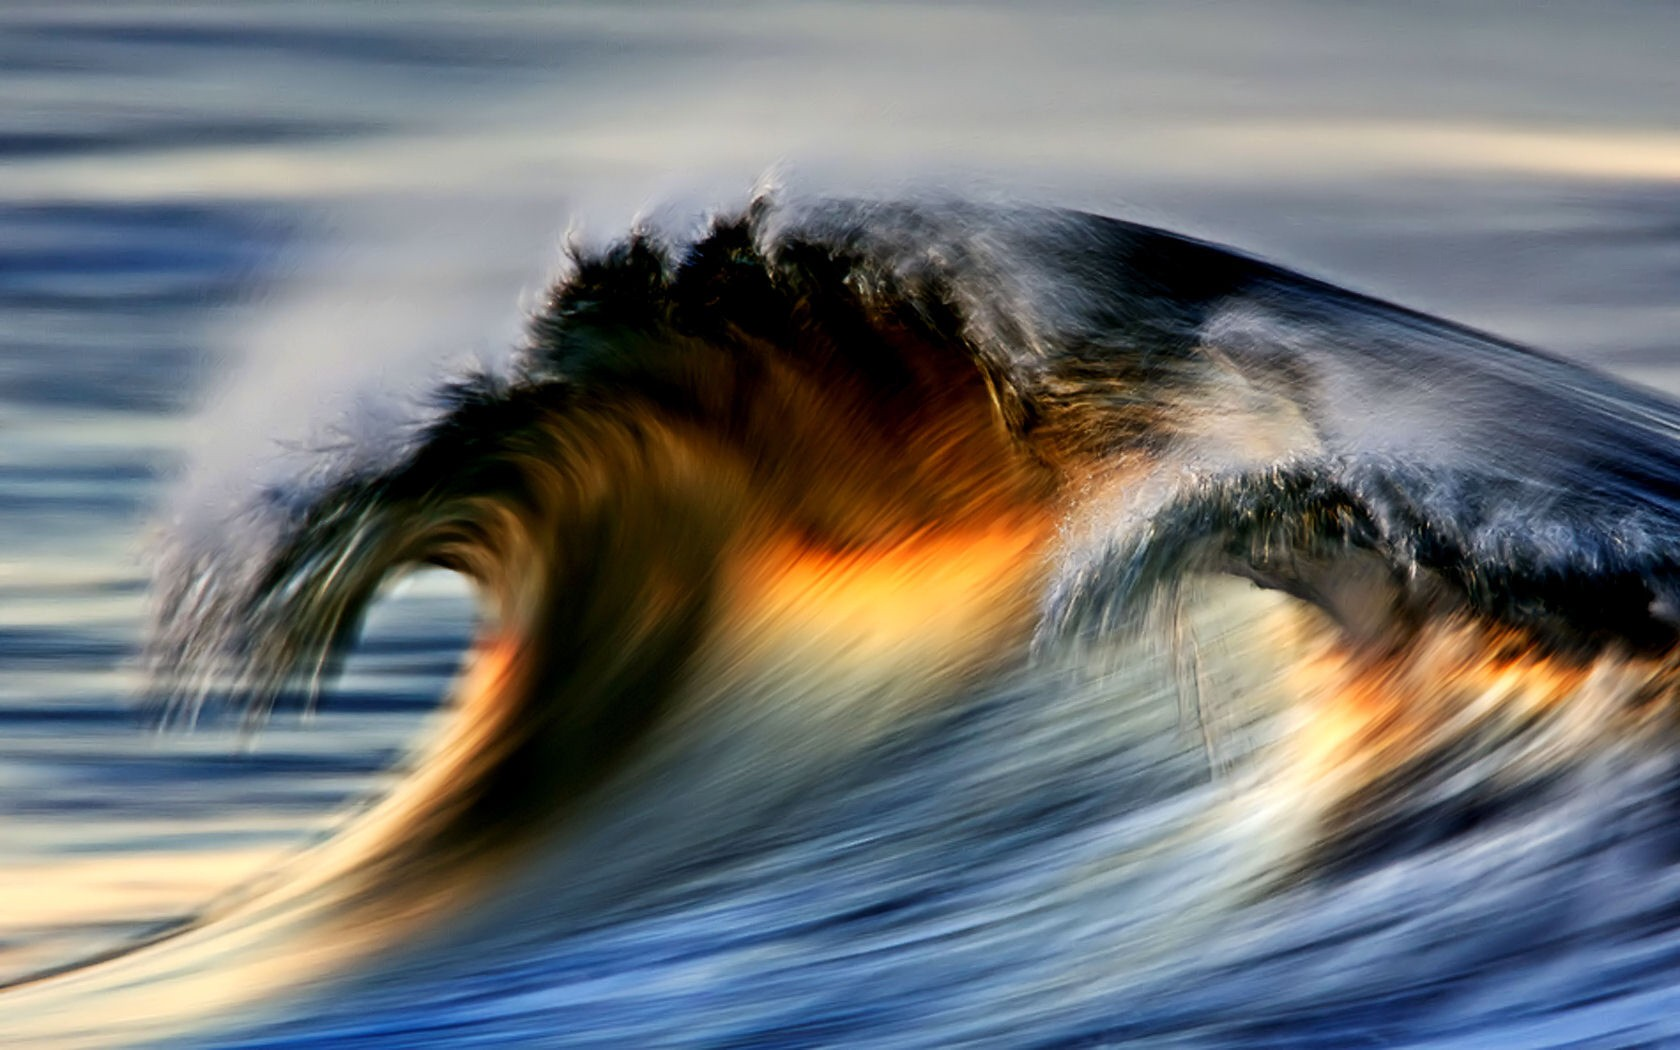 Ocean Waves Wallpapers Nature Wallpapers Gallery   PC 1680x1050